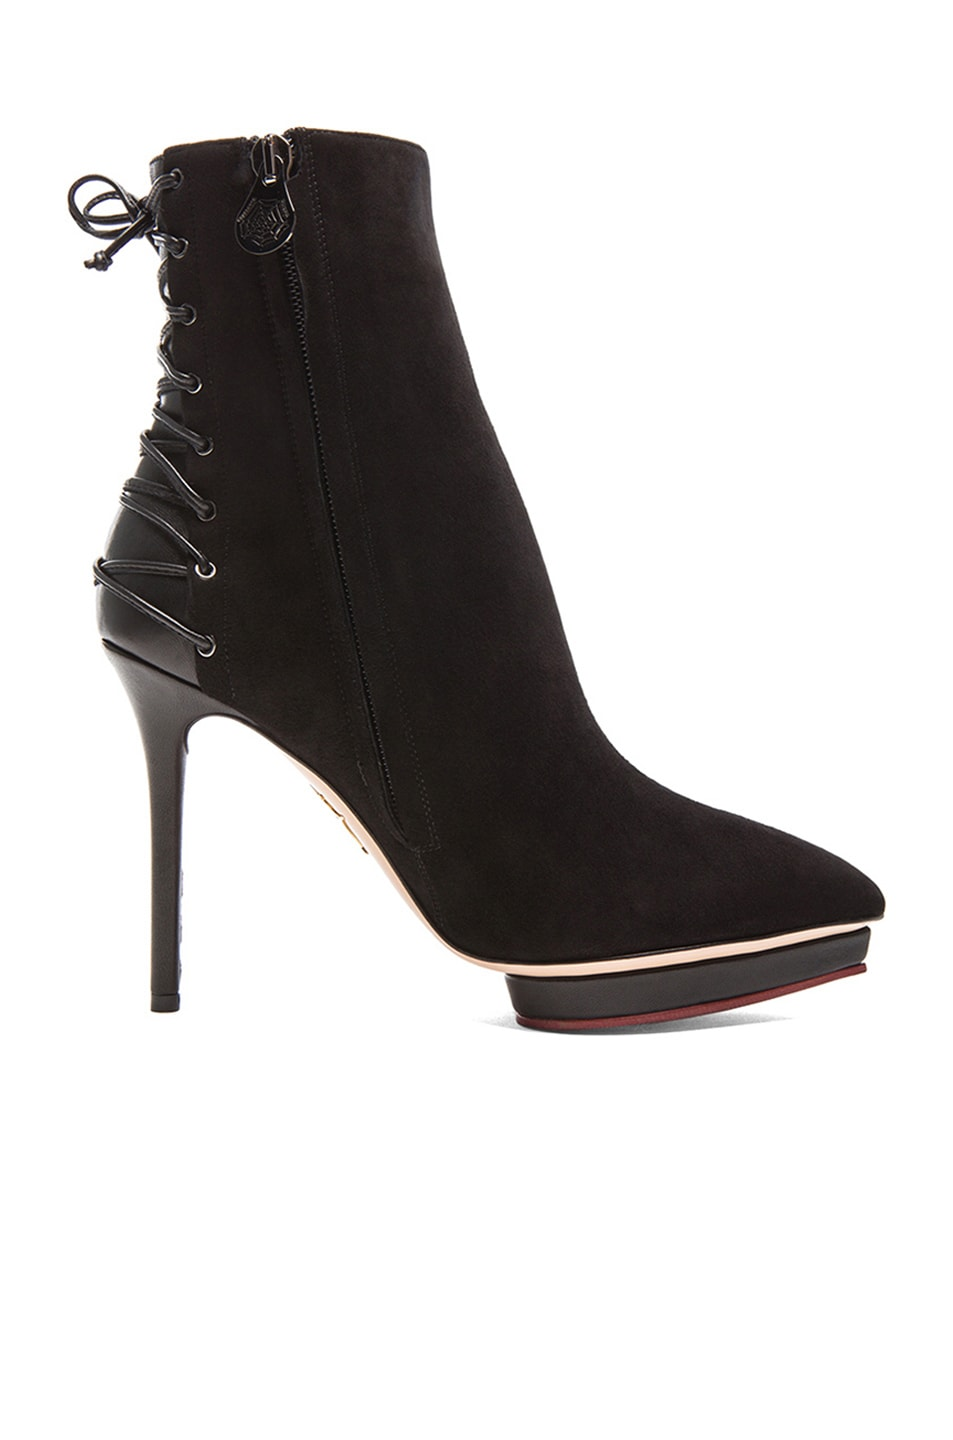 Image 5 of Charlotte Olympia Laced-Up Deborah Suede Booties in Black